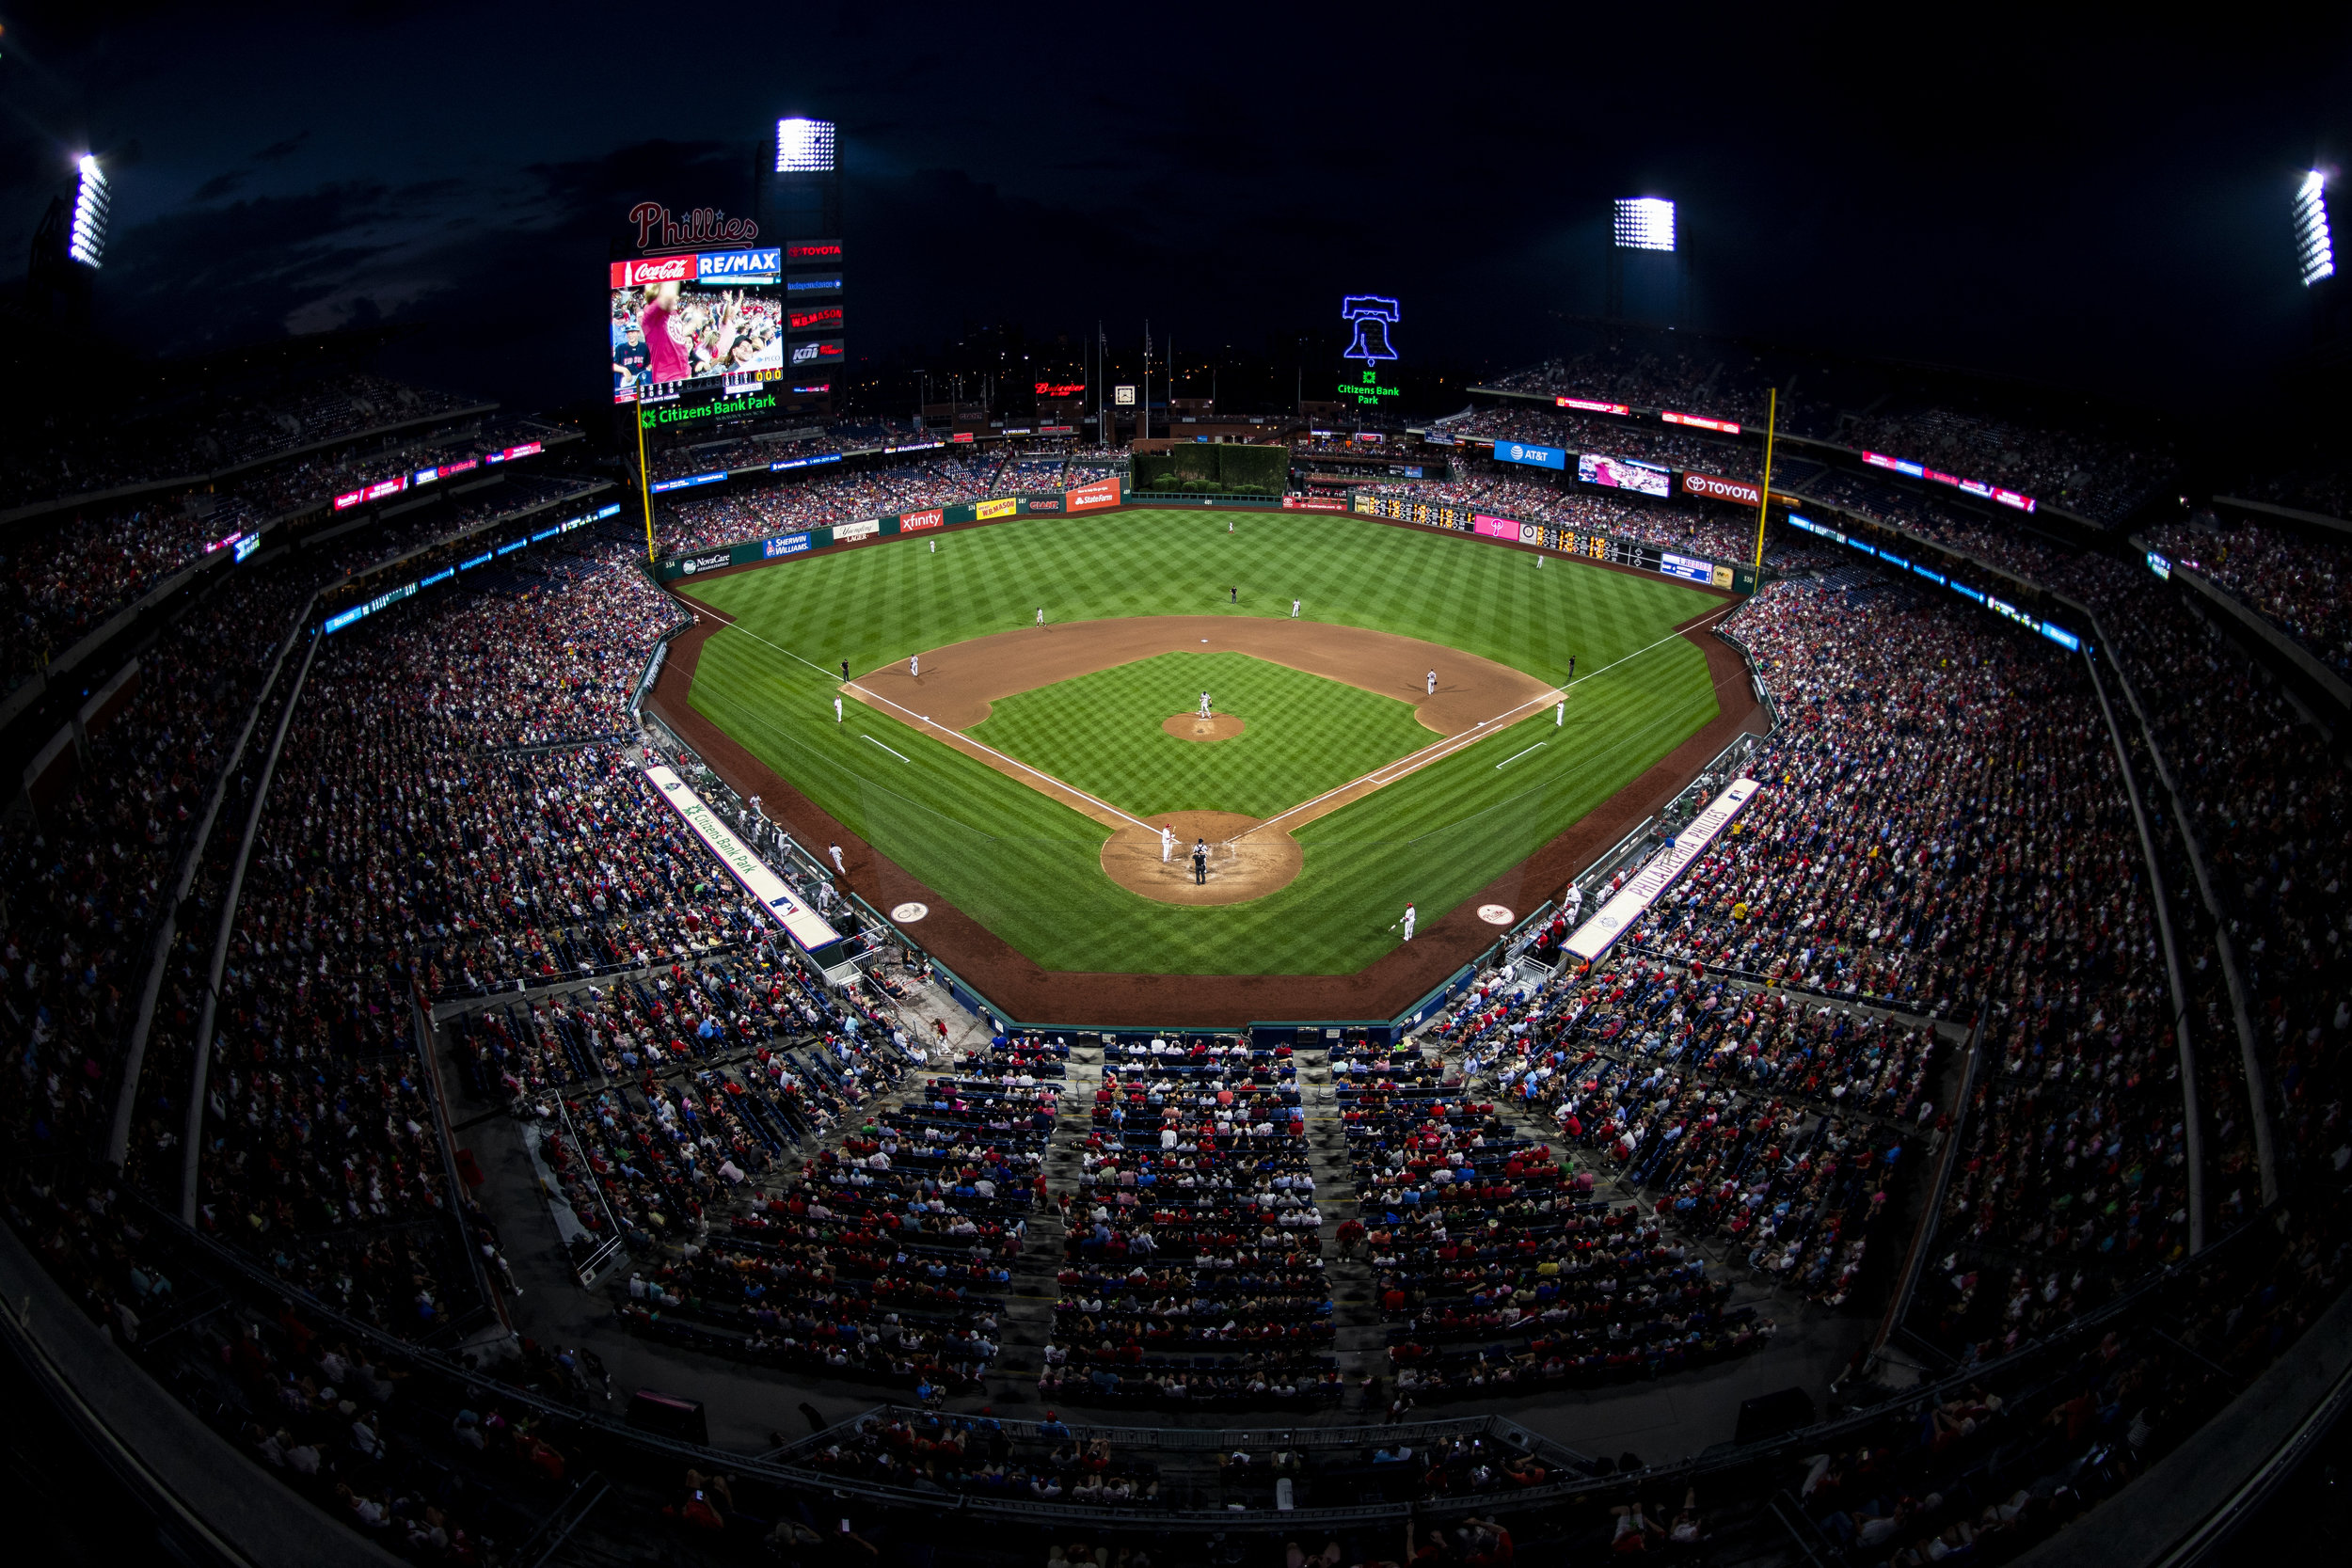 August 14, 2018, Philadelphia, PA: A view of the entire ballpark as the Boston Red Sox face the Philadelphia Phillies at Citizen Bank Park in Philadelphia, Pennsylvania on Tuesday, August 14, 2018. (Photo by Matthew Thomas/Boston Red Sox)